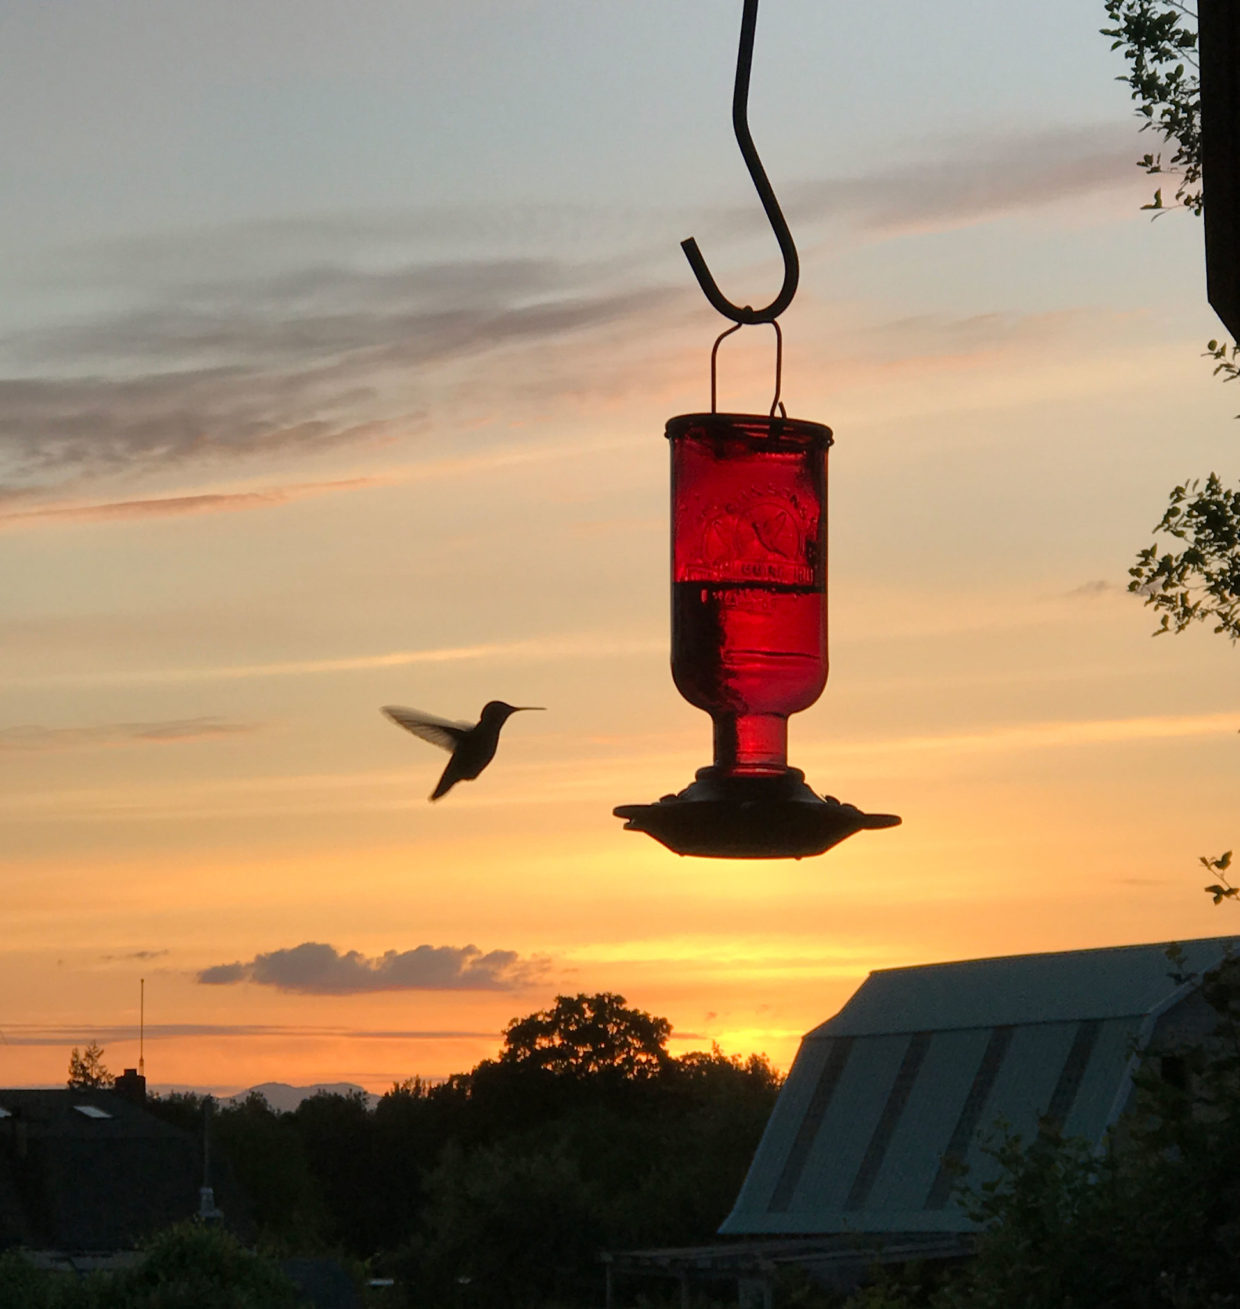 Offer nectar to tempt hummingbirds to the garden